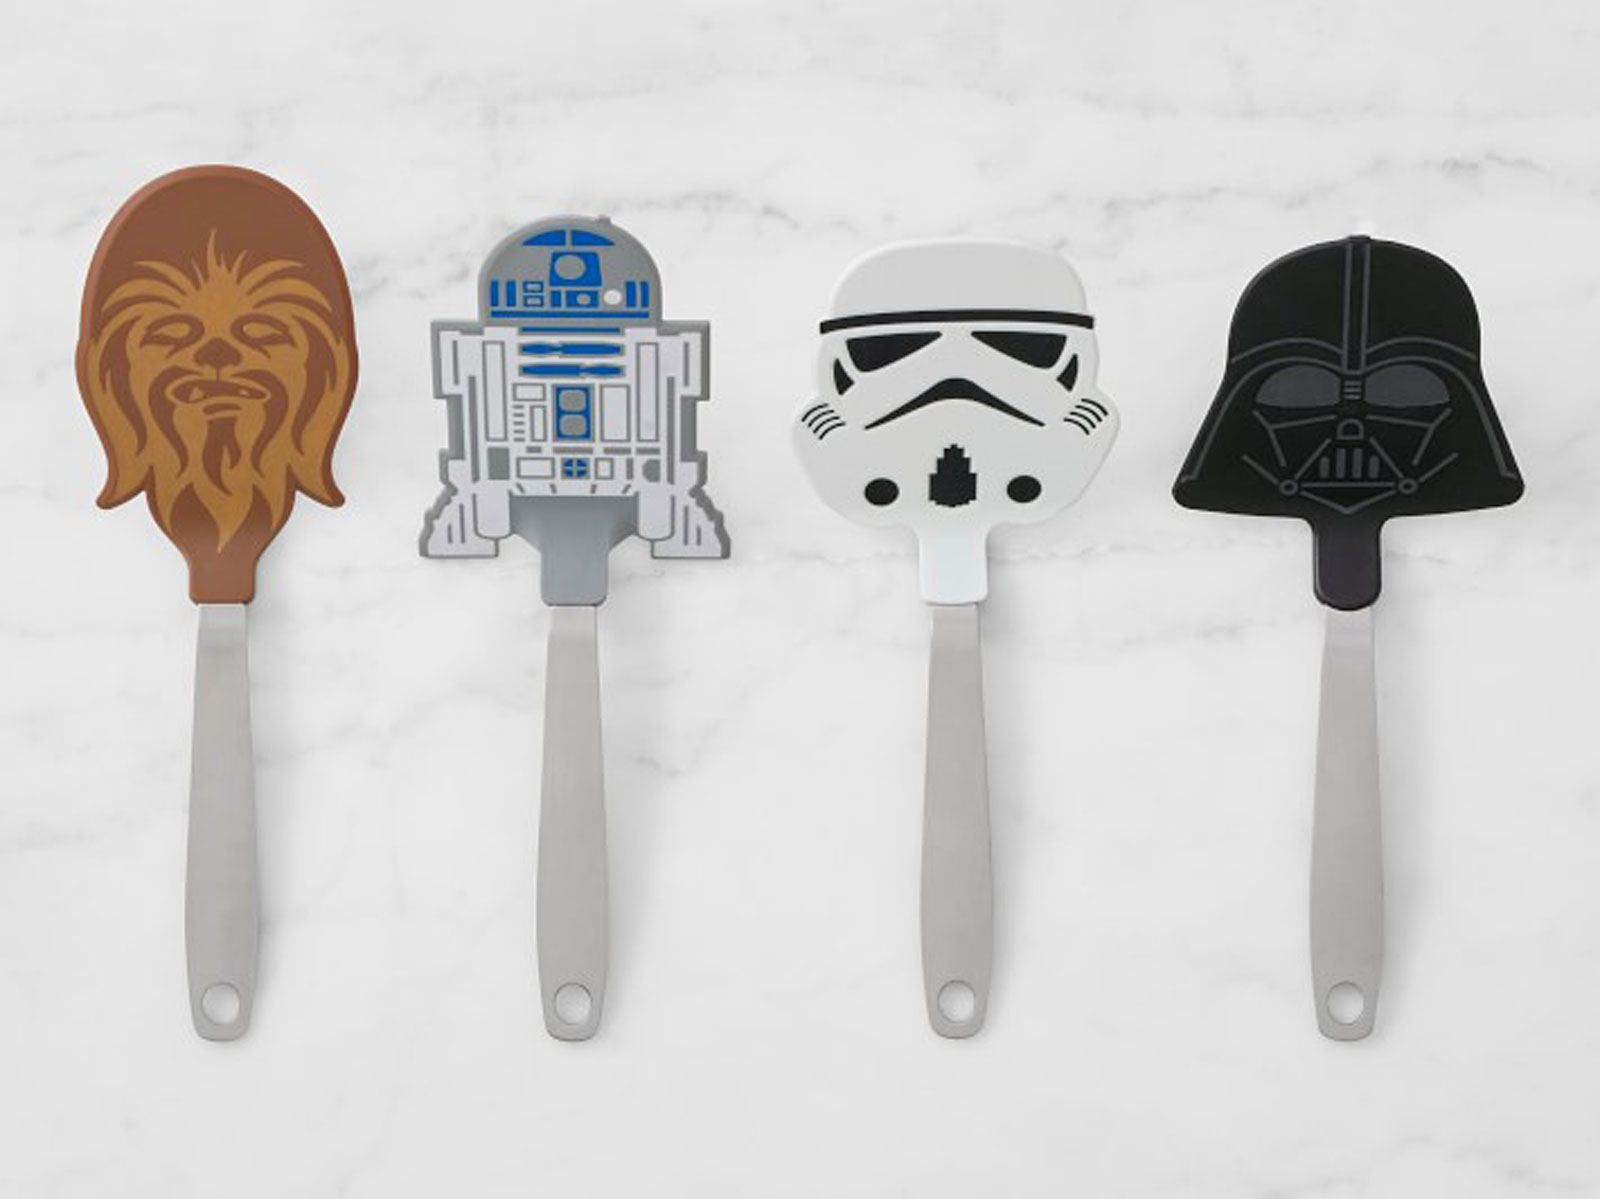 Star Wars spatulas